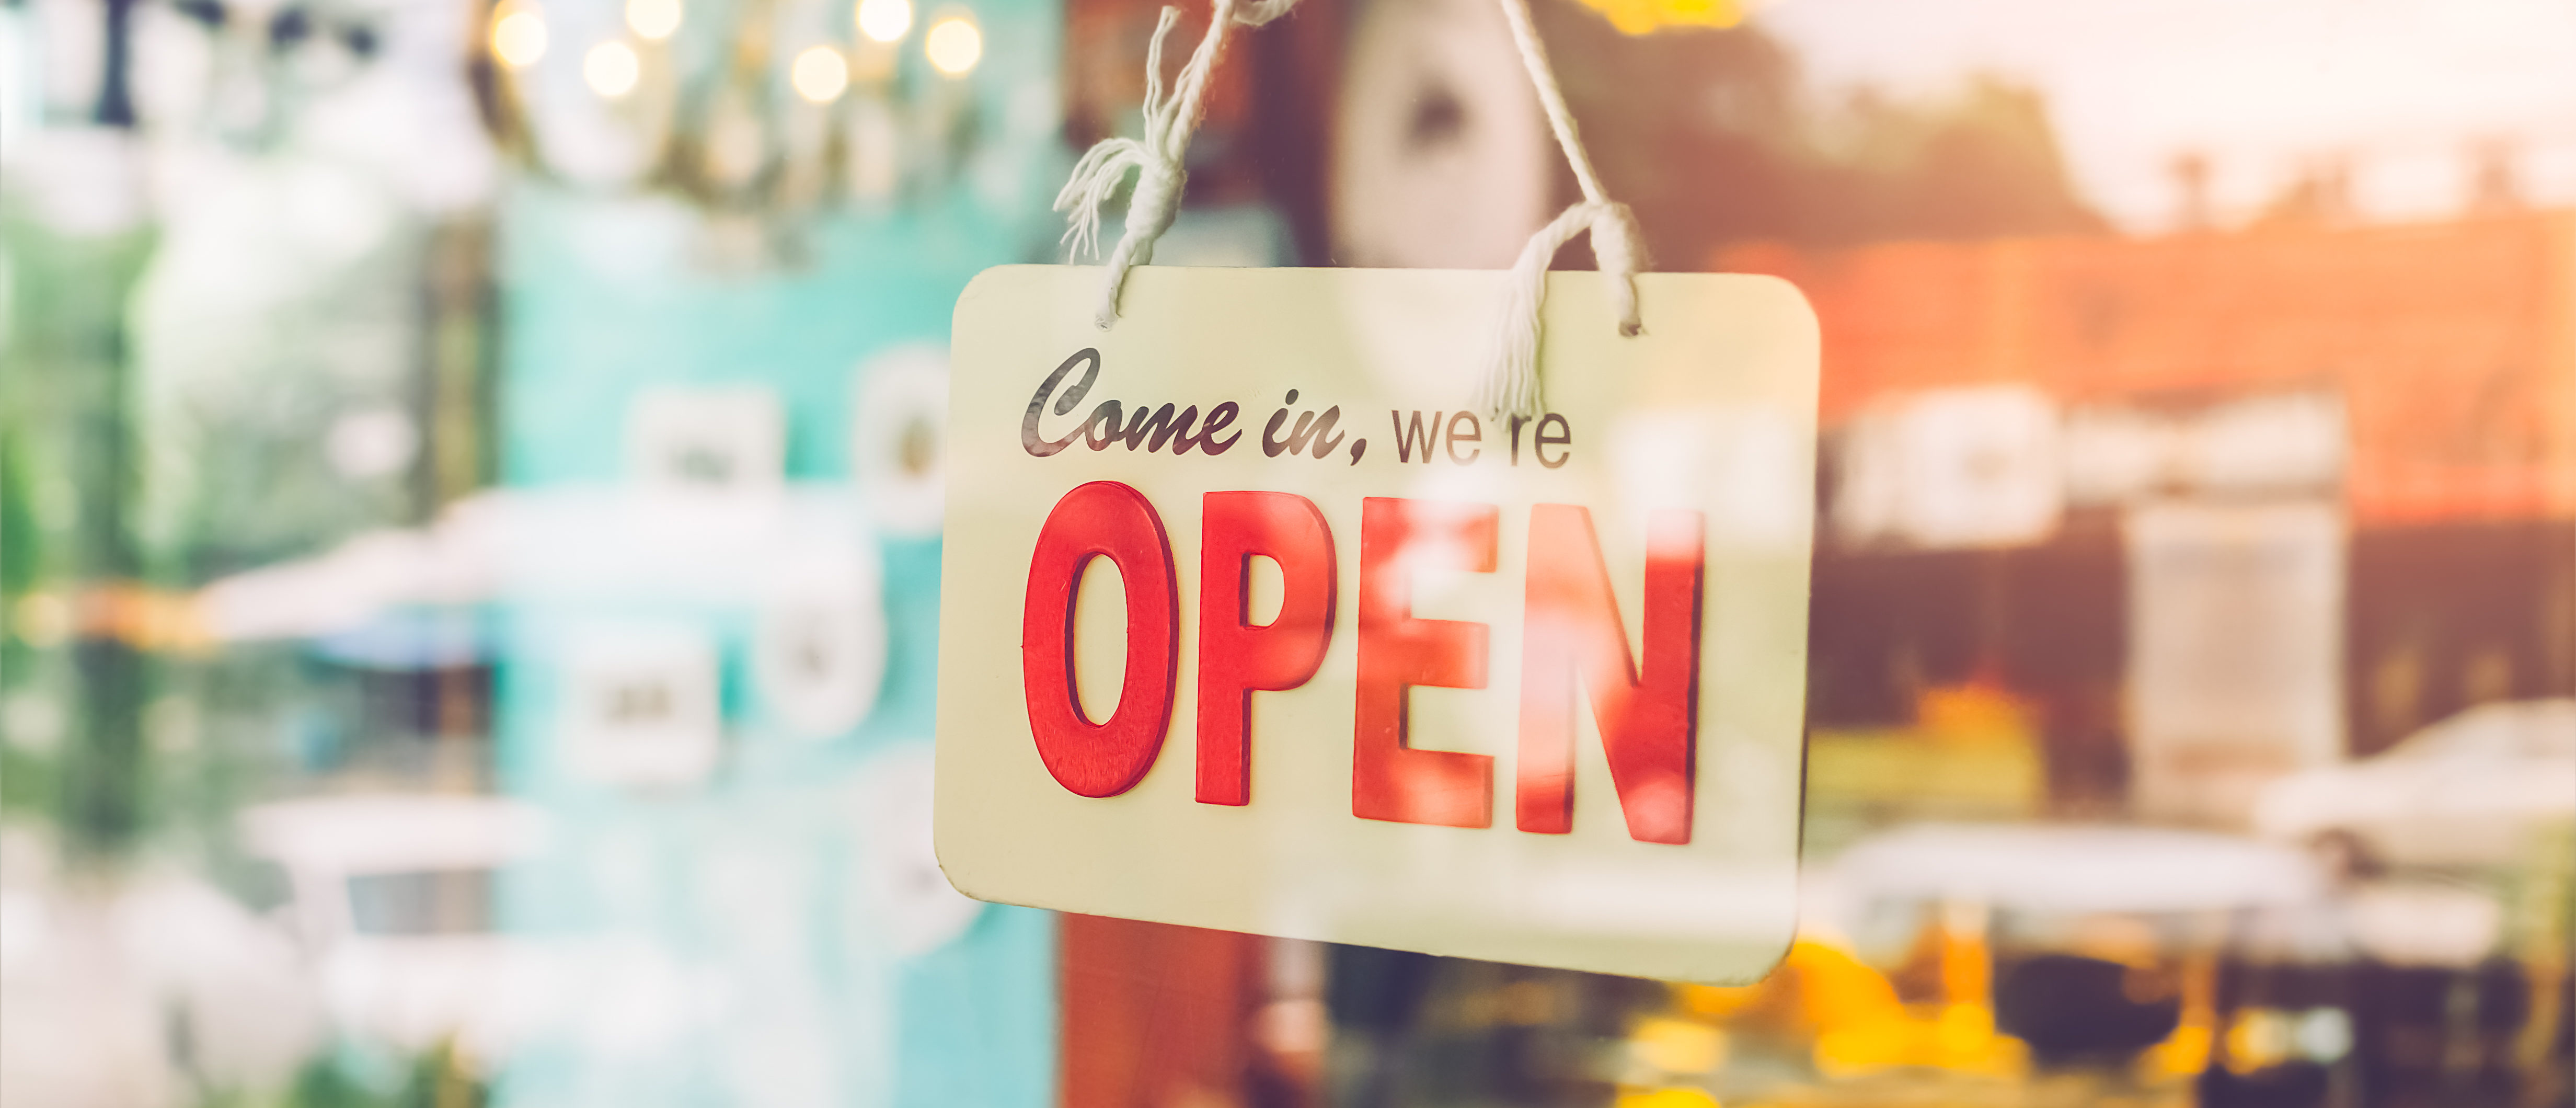 Open sign broad through the glass of door in cafe. Business service and food concept. (Shutterstock)